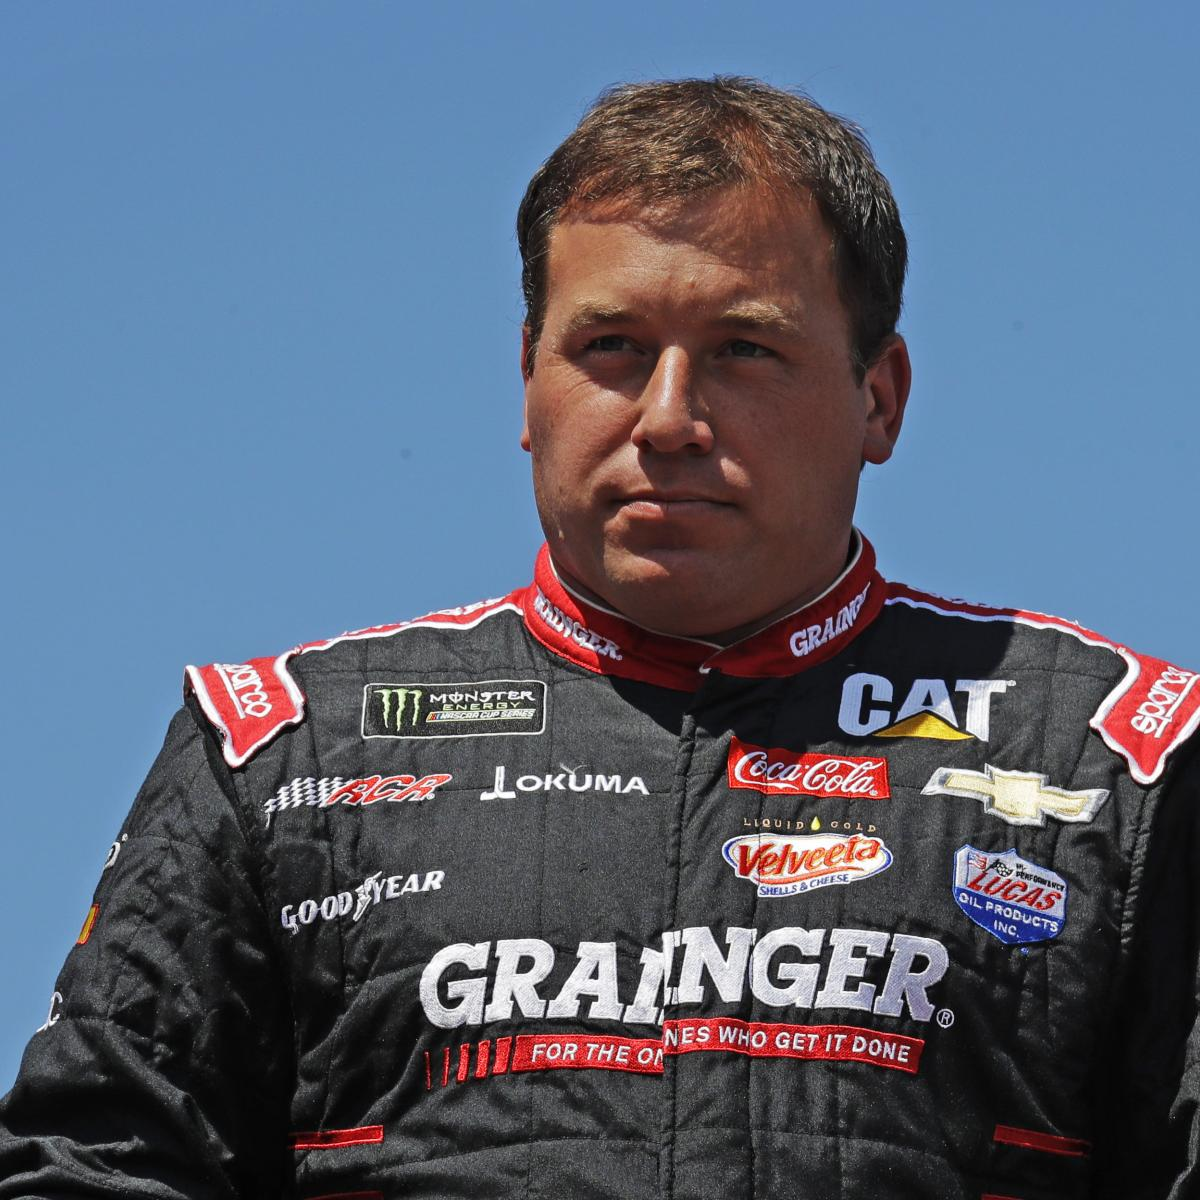 Ryan Newman Released from Hospital After Scary Crash at Daytona 500